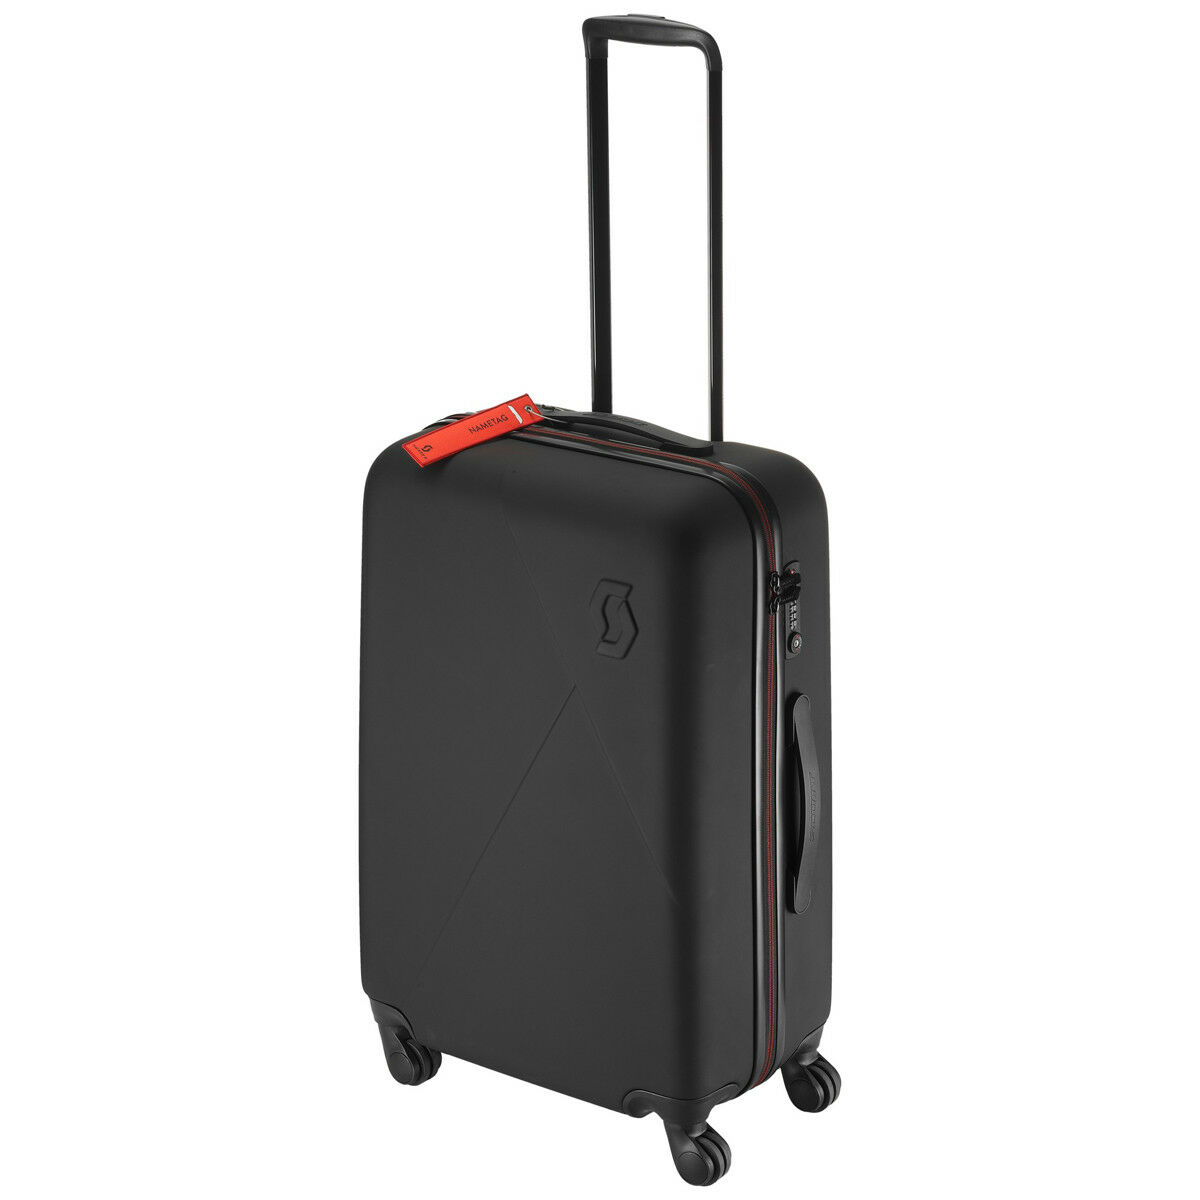 Scott Travel Custodia robusta 70 VALIGIA RIGIDATROLLEY nerorosso